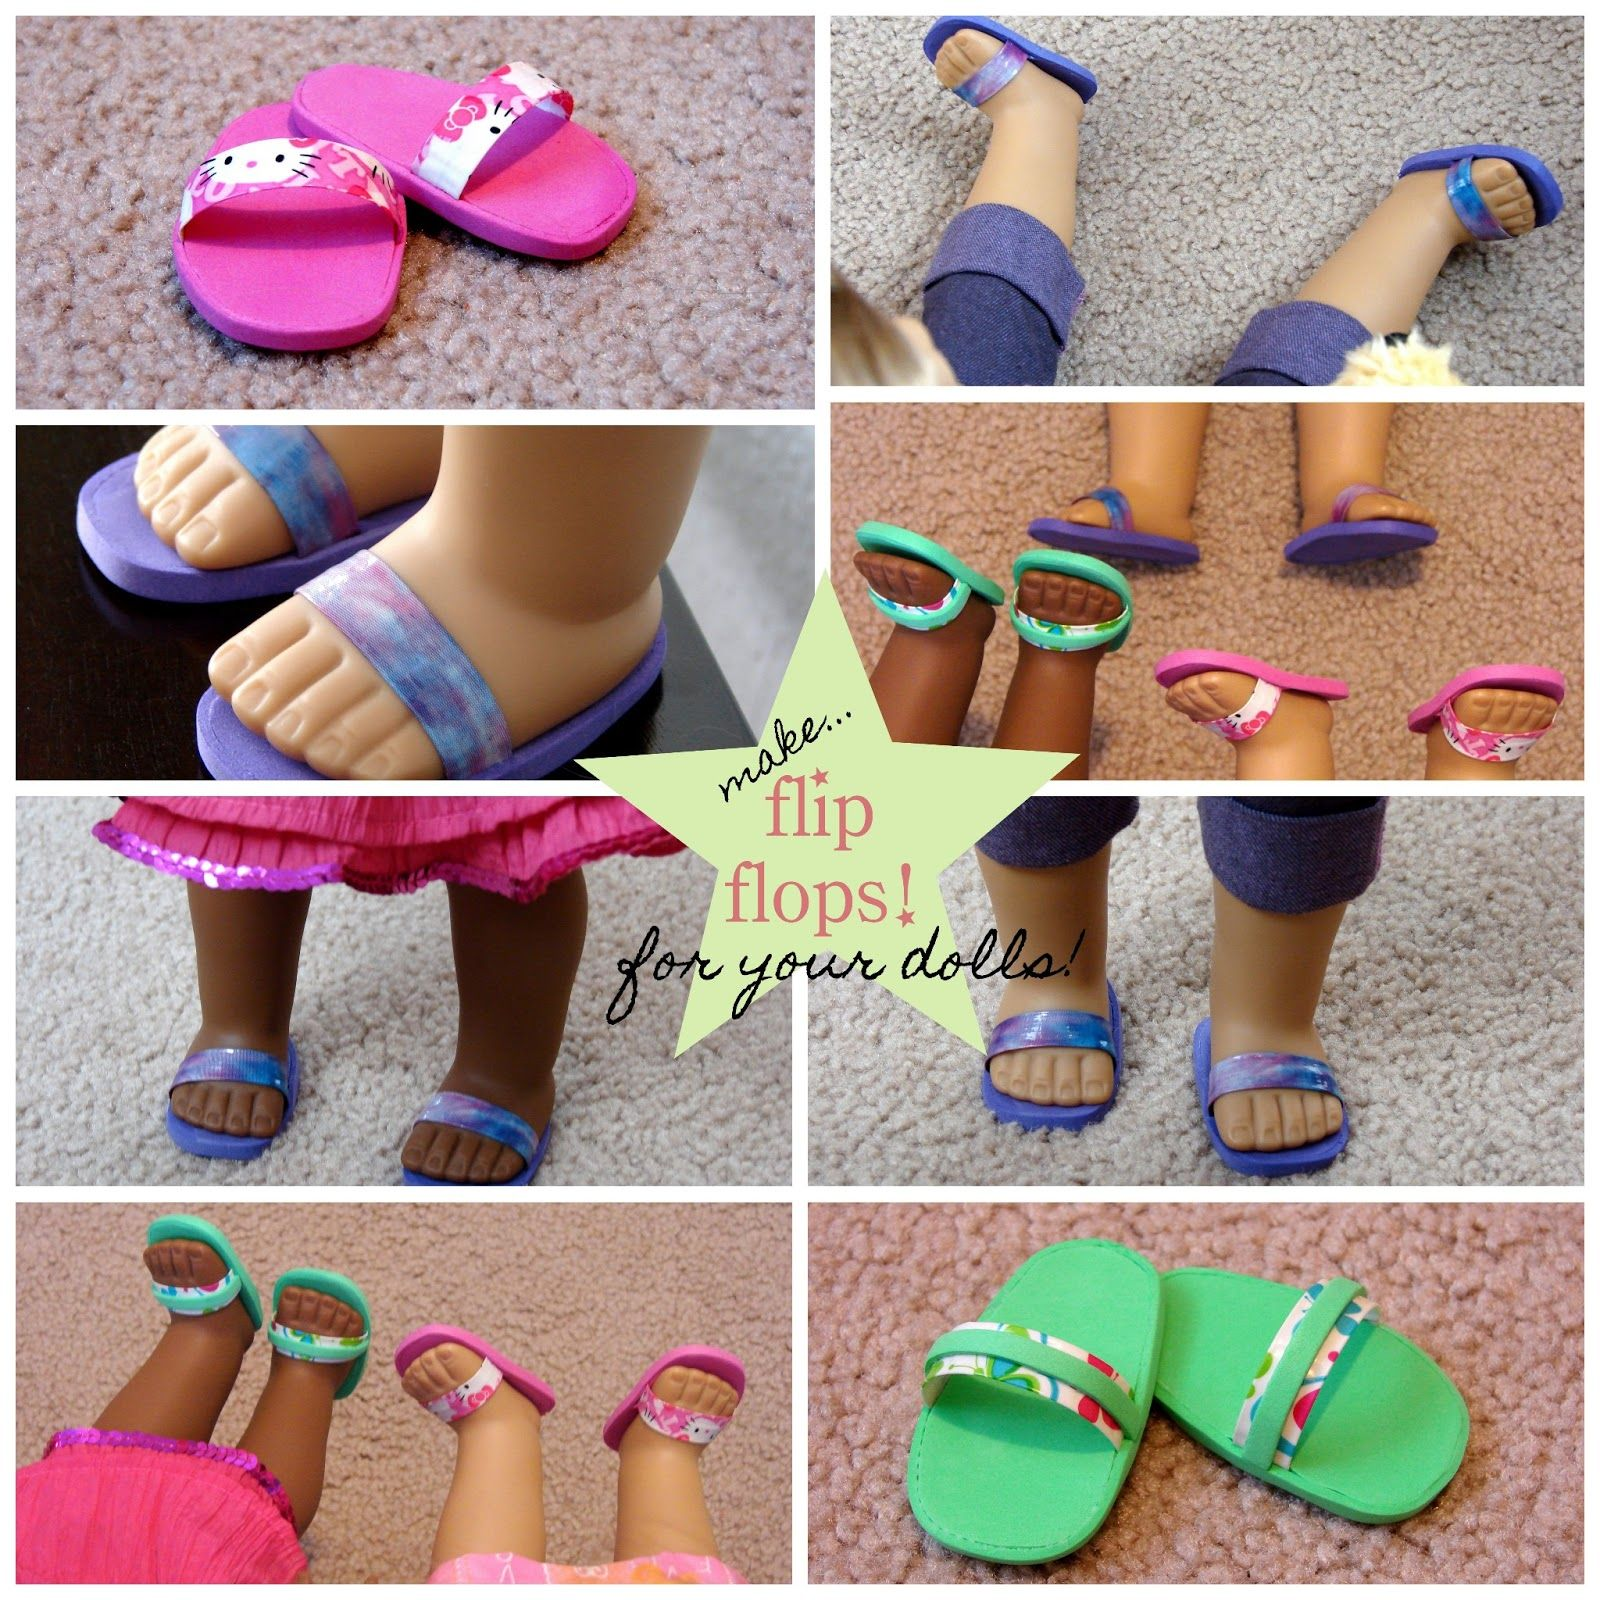 American Girl Doll Play: Doll Craft - Make Your Doll Flip Flops! Foam sheets and duct tape. #americangirldollcrafts